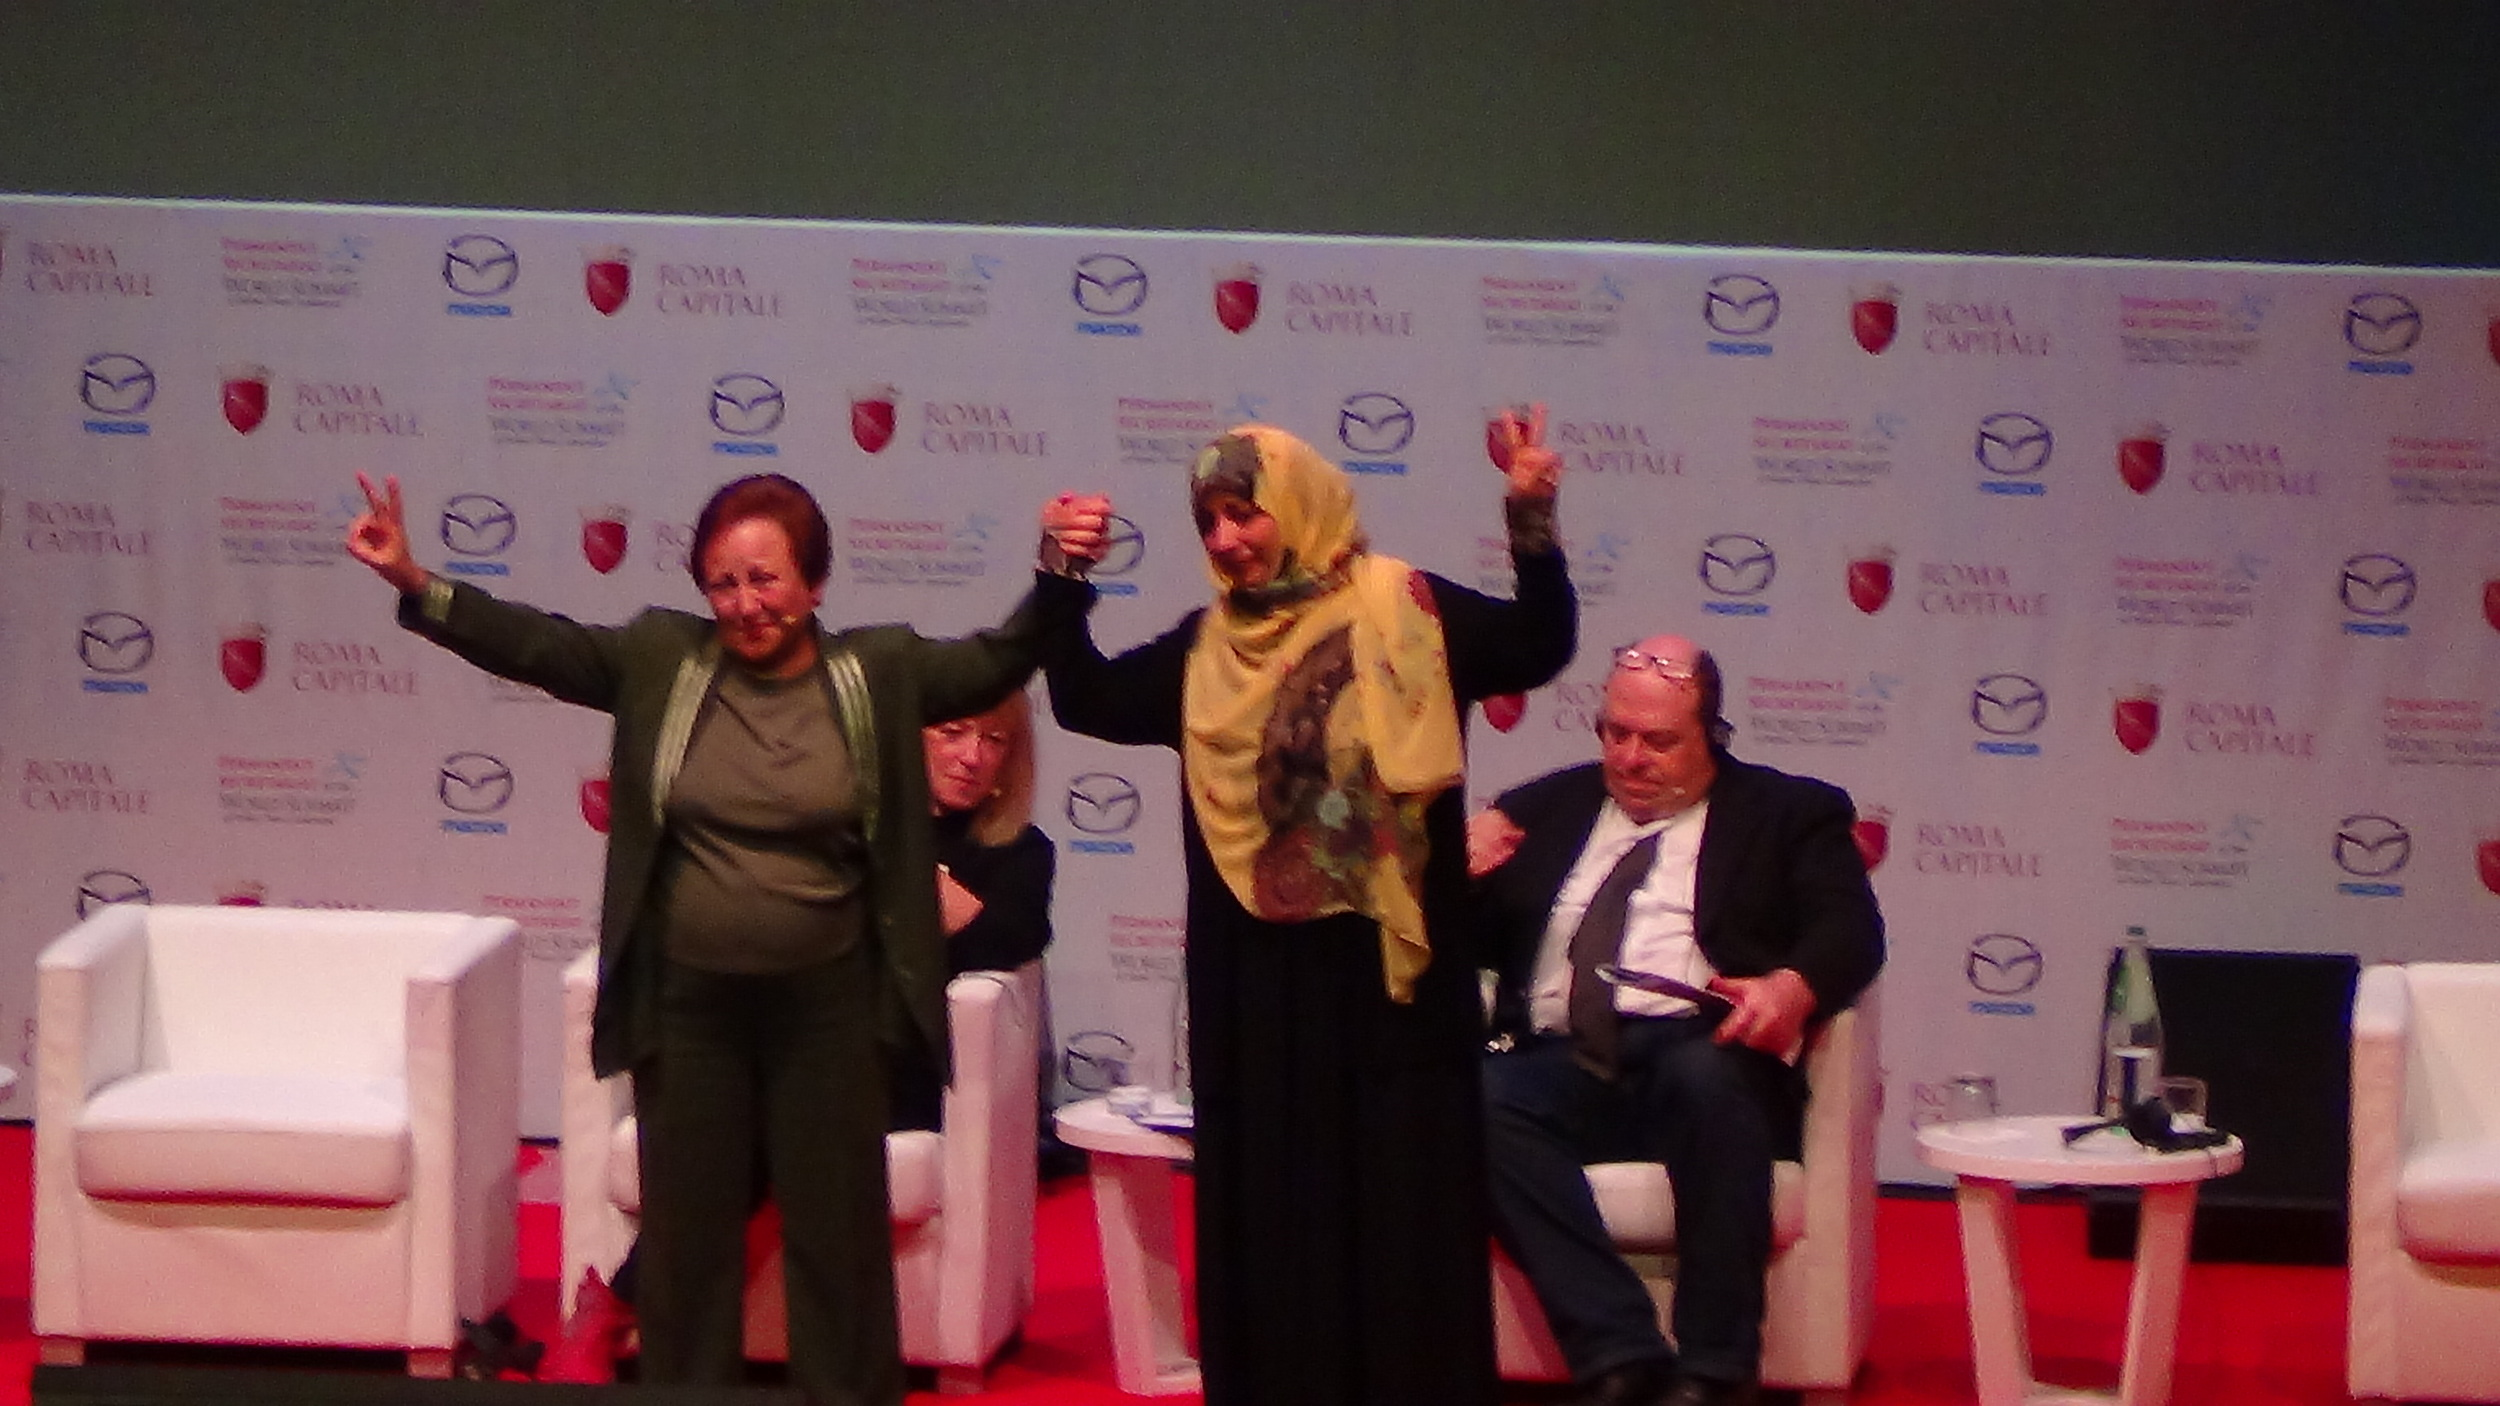 DR. SHRIN EBADI FROM IRAN & YEMENI JOURNALIST-TAWAKKUL KARMAN BOTH 2011 NOBEL LAUREATES OF PEACE FOR WOMEN & CHILDREN'S RIGHTS.JPG